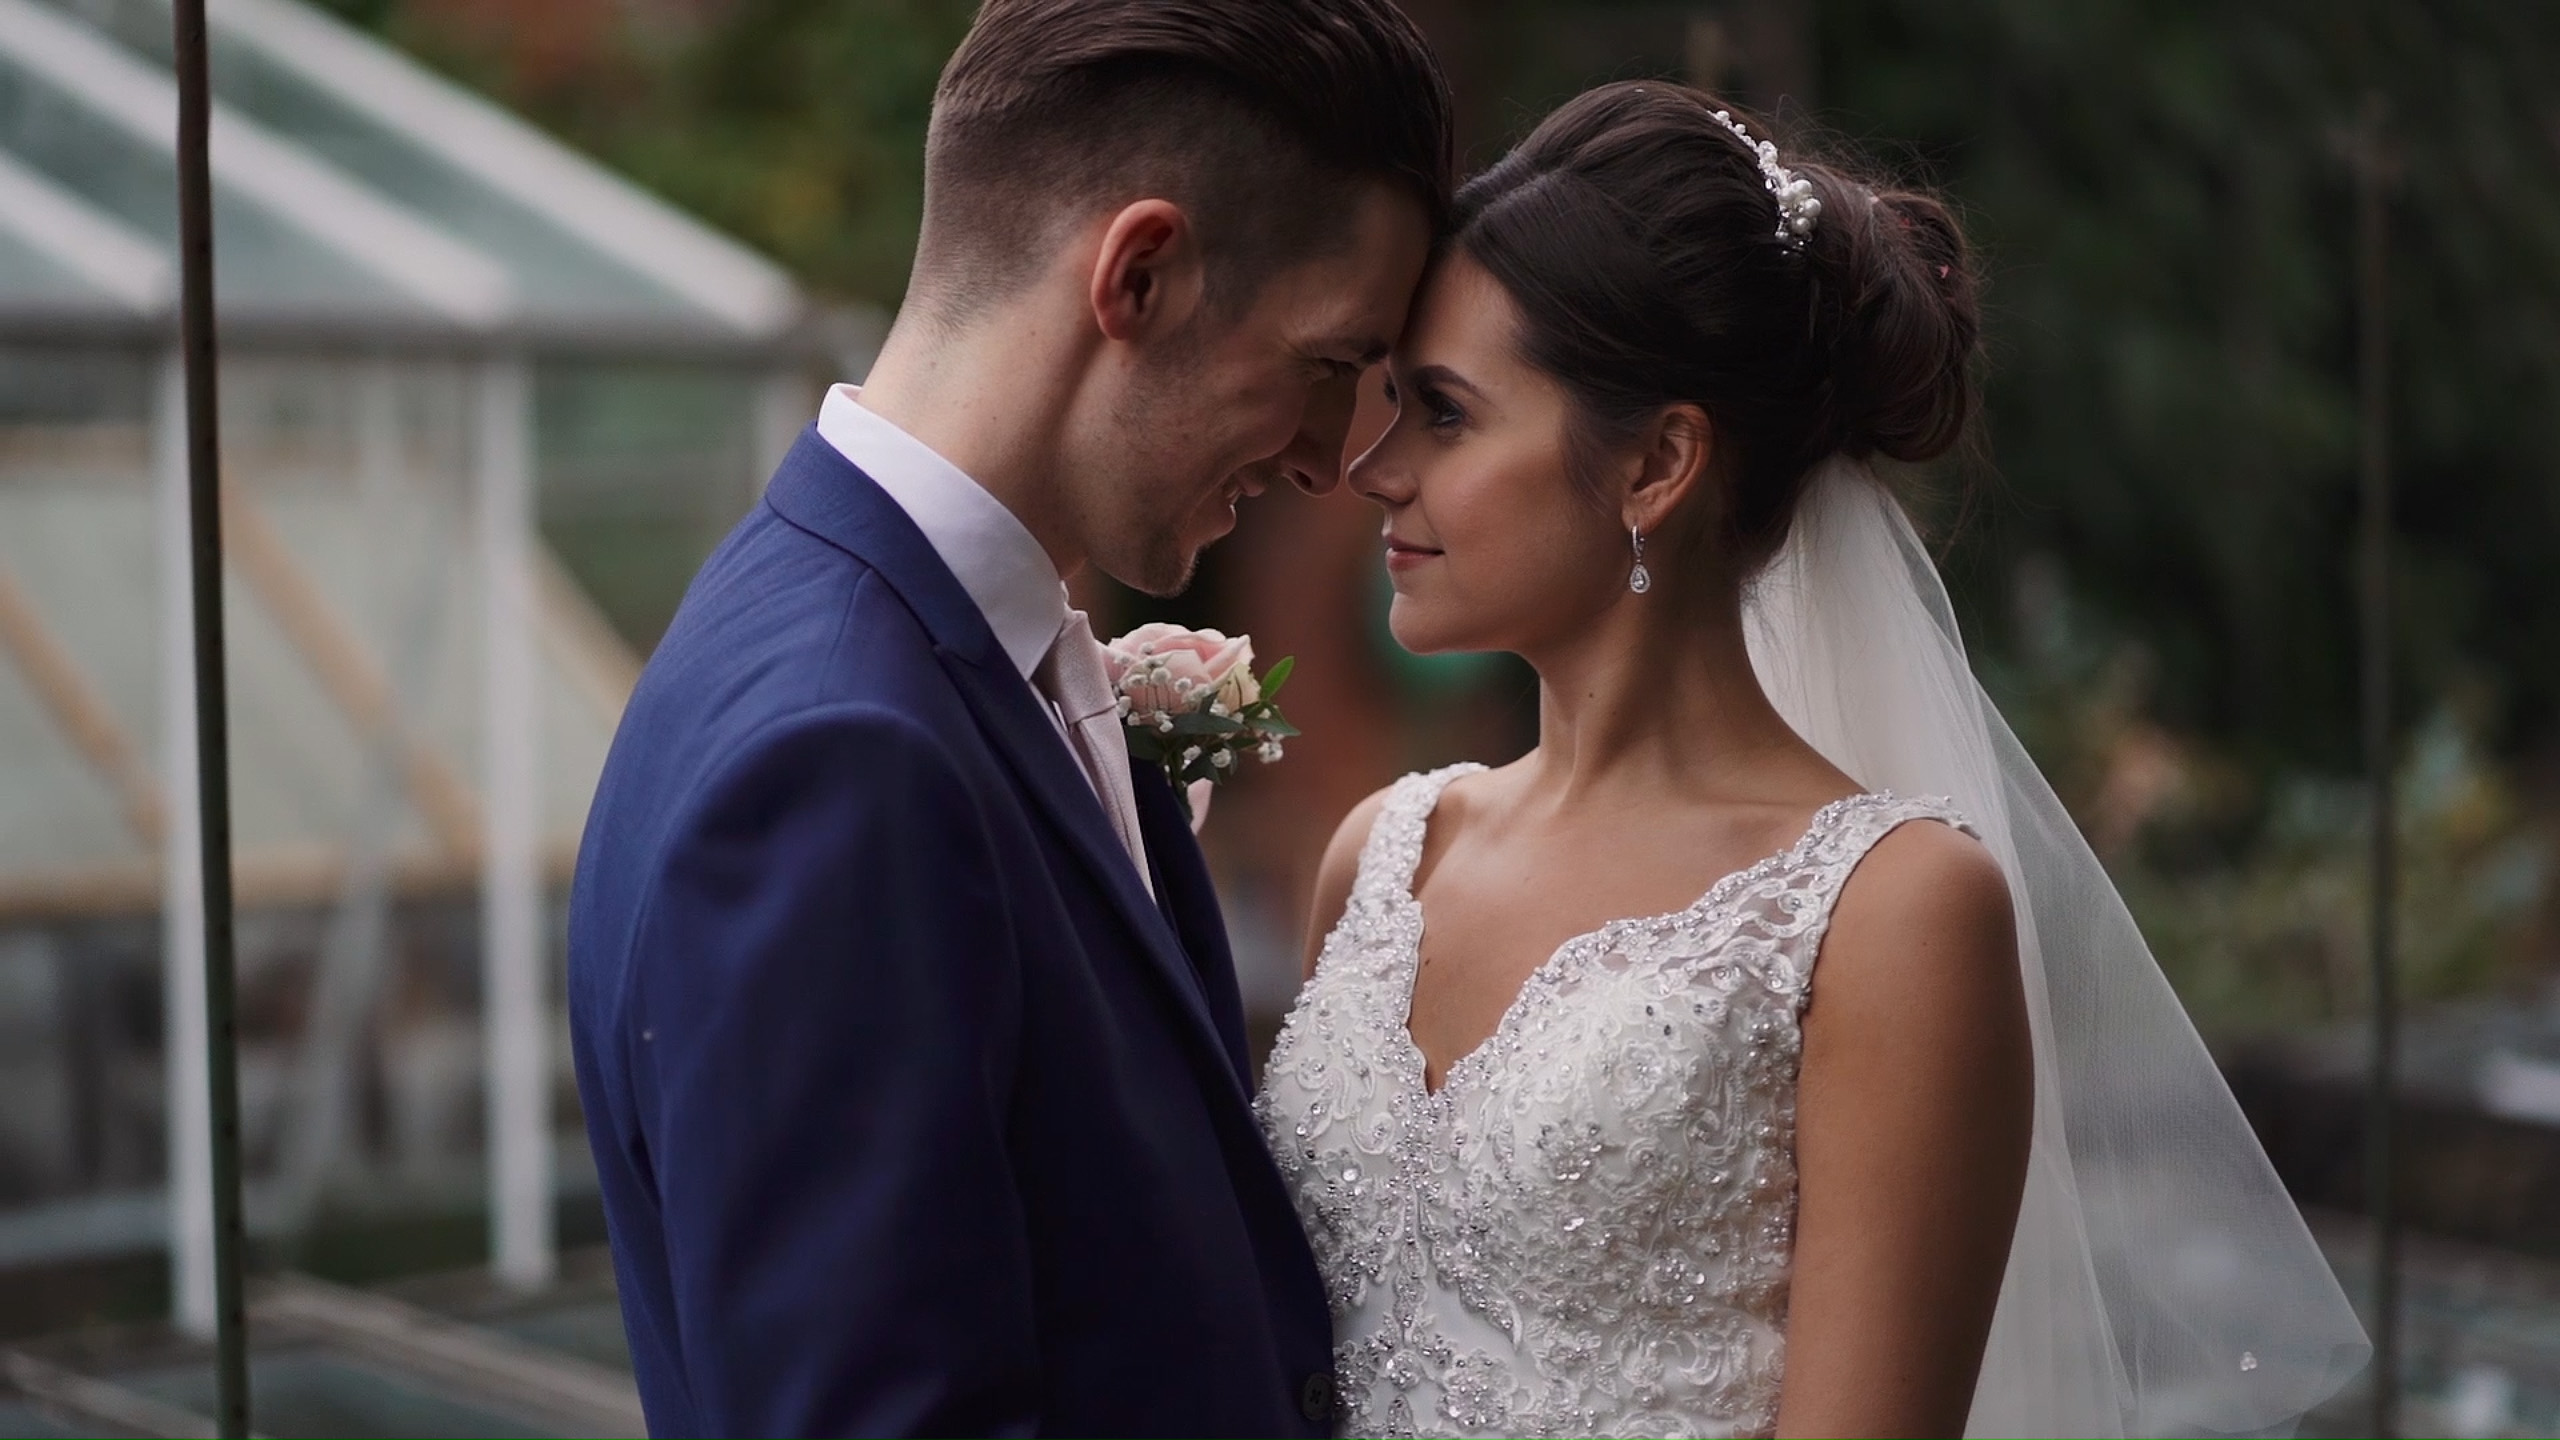 Wedding Videos in Lincolnshire